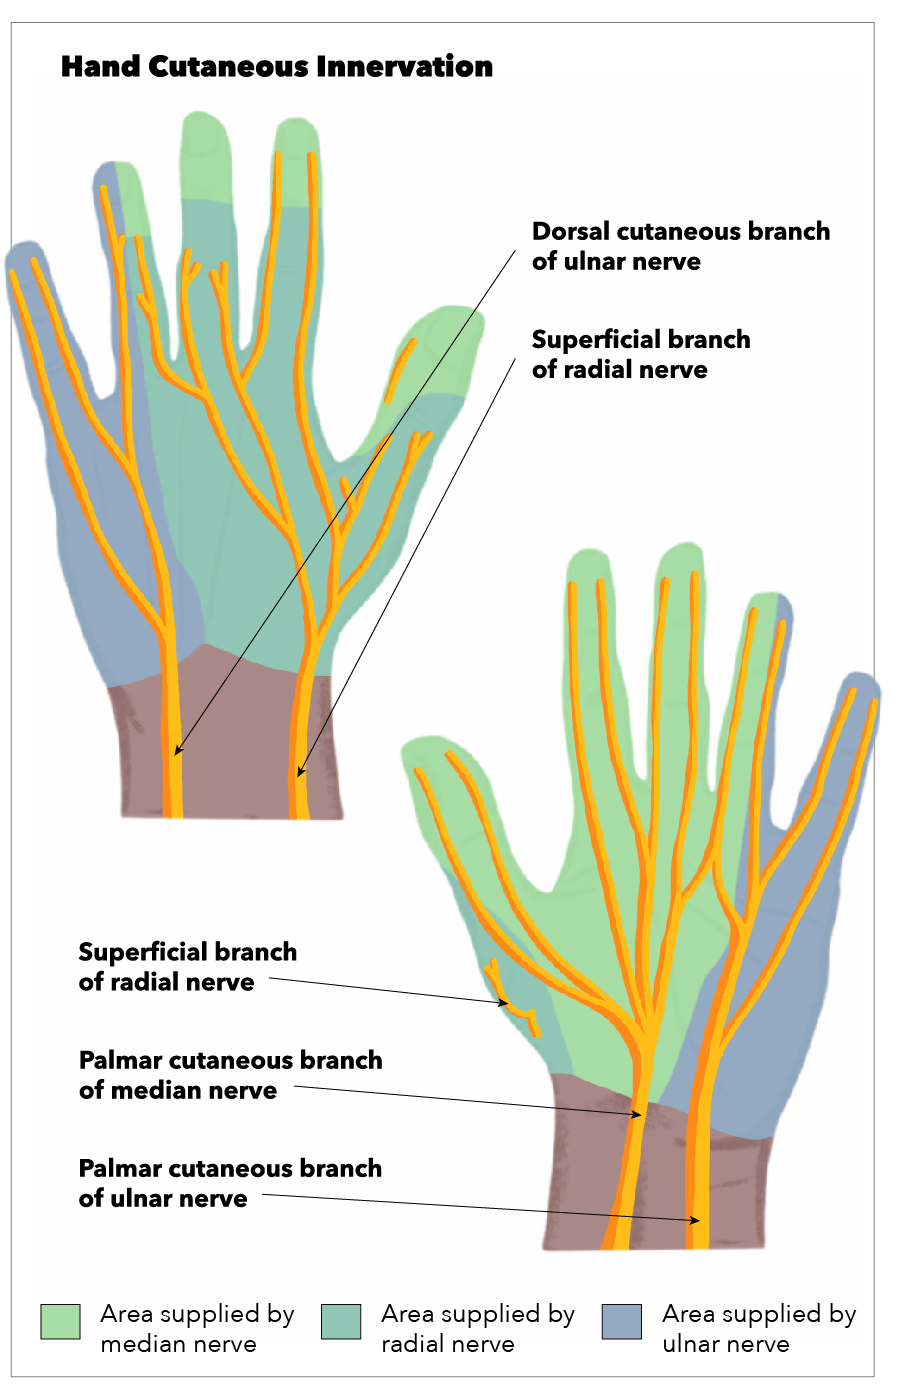 Hand Cutaneous Innervation, Superficial branch of radial nerve, Palmar cutaneous branch of median nerve, Palmar cutaneous branch of ulnar nerve, Superficial branch of radial nerve, Dorsal cutaneous branch of ulnar nerve